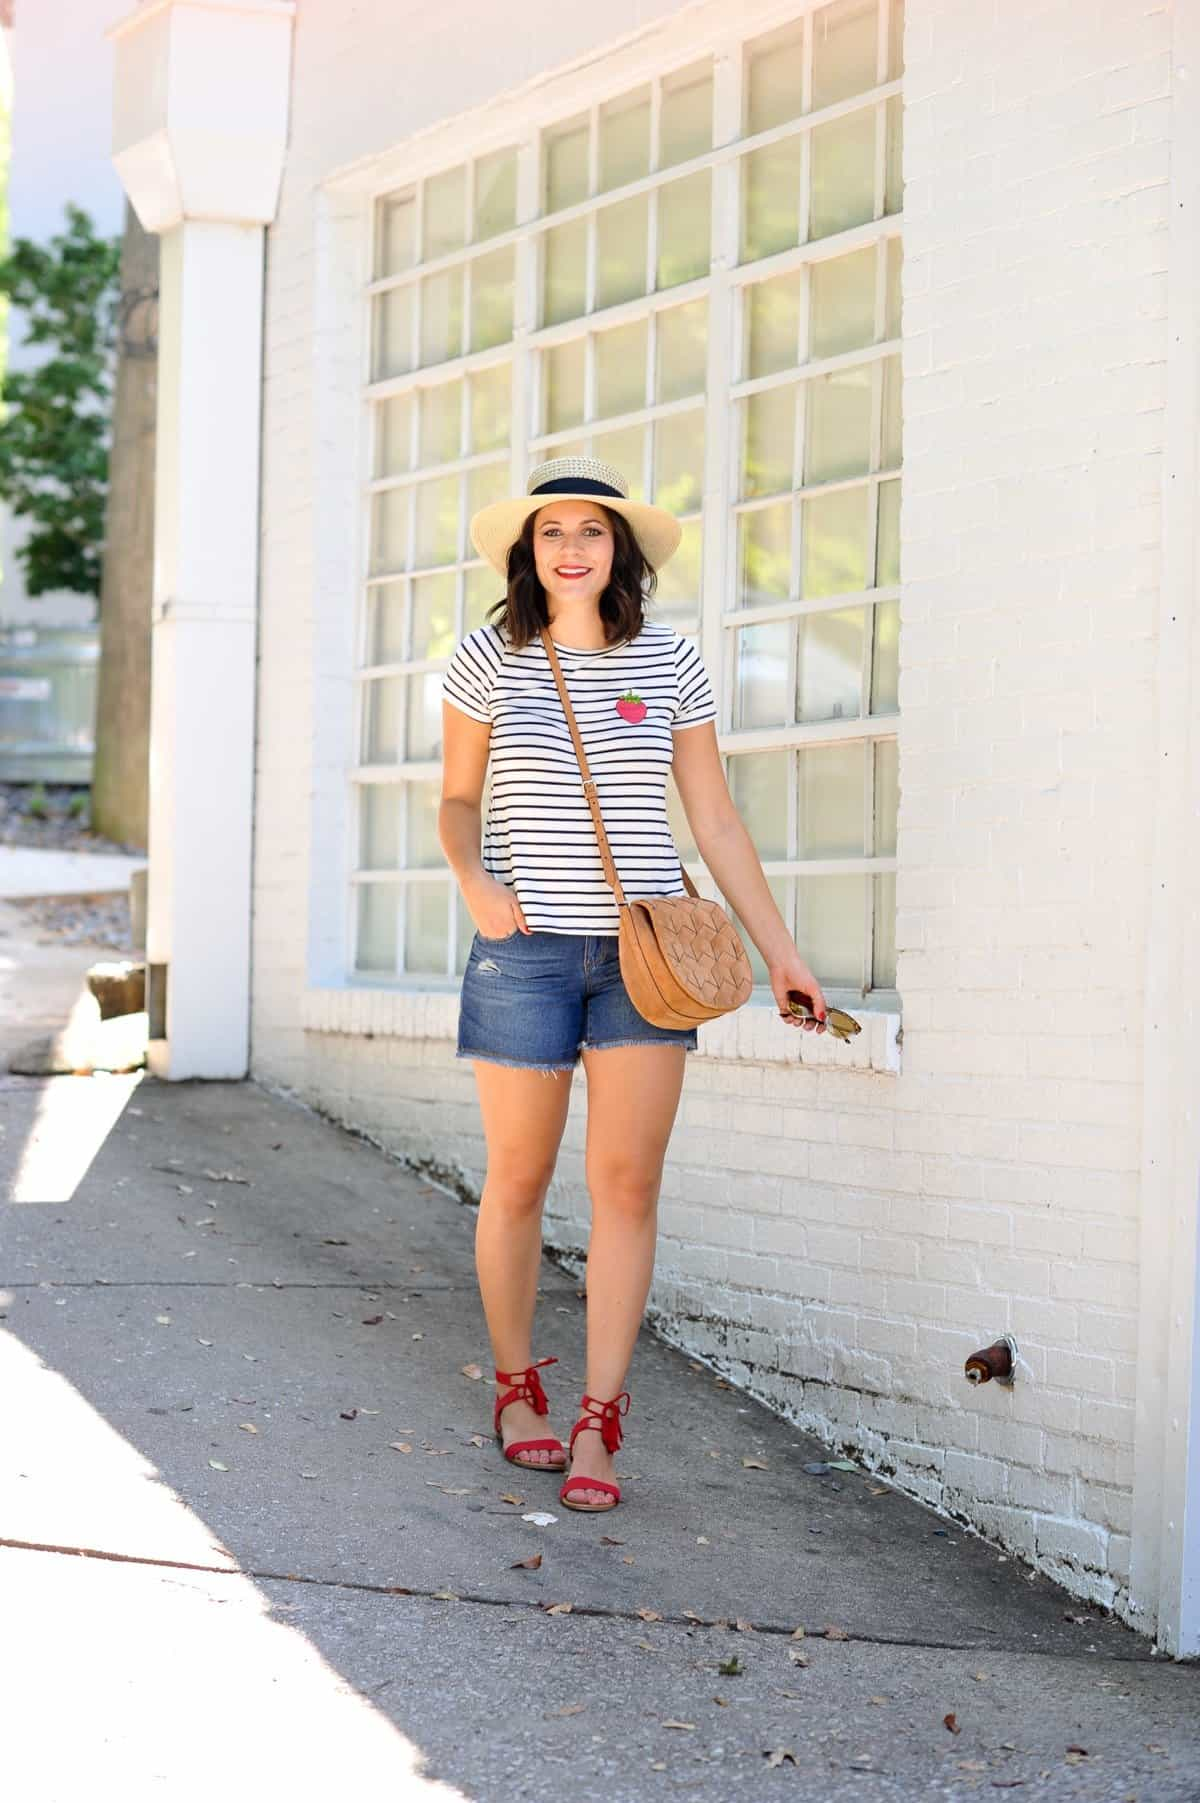 4th of july outfit ideas, striped tee outfits - @mystylevita - 10